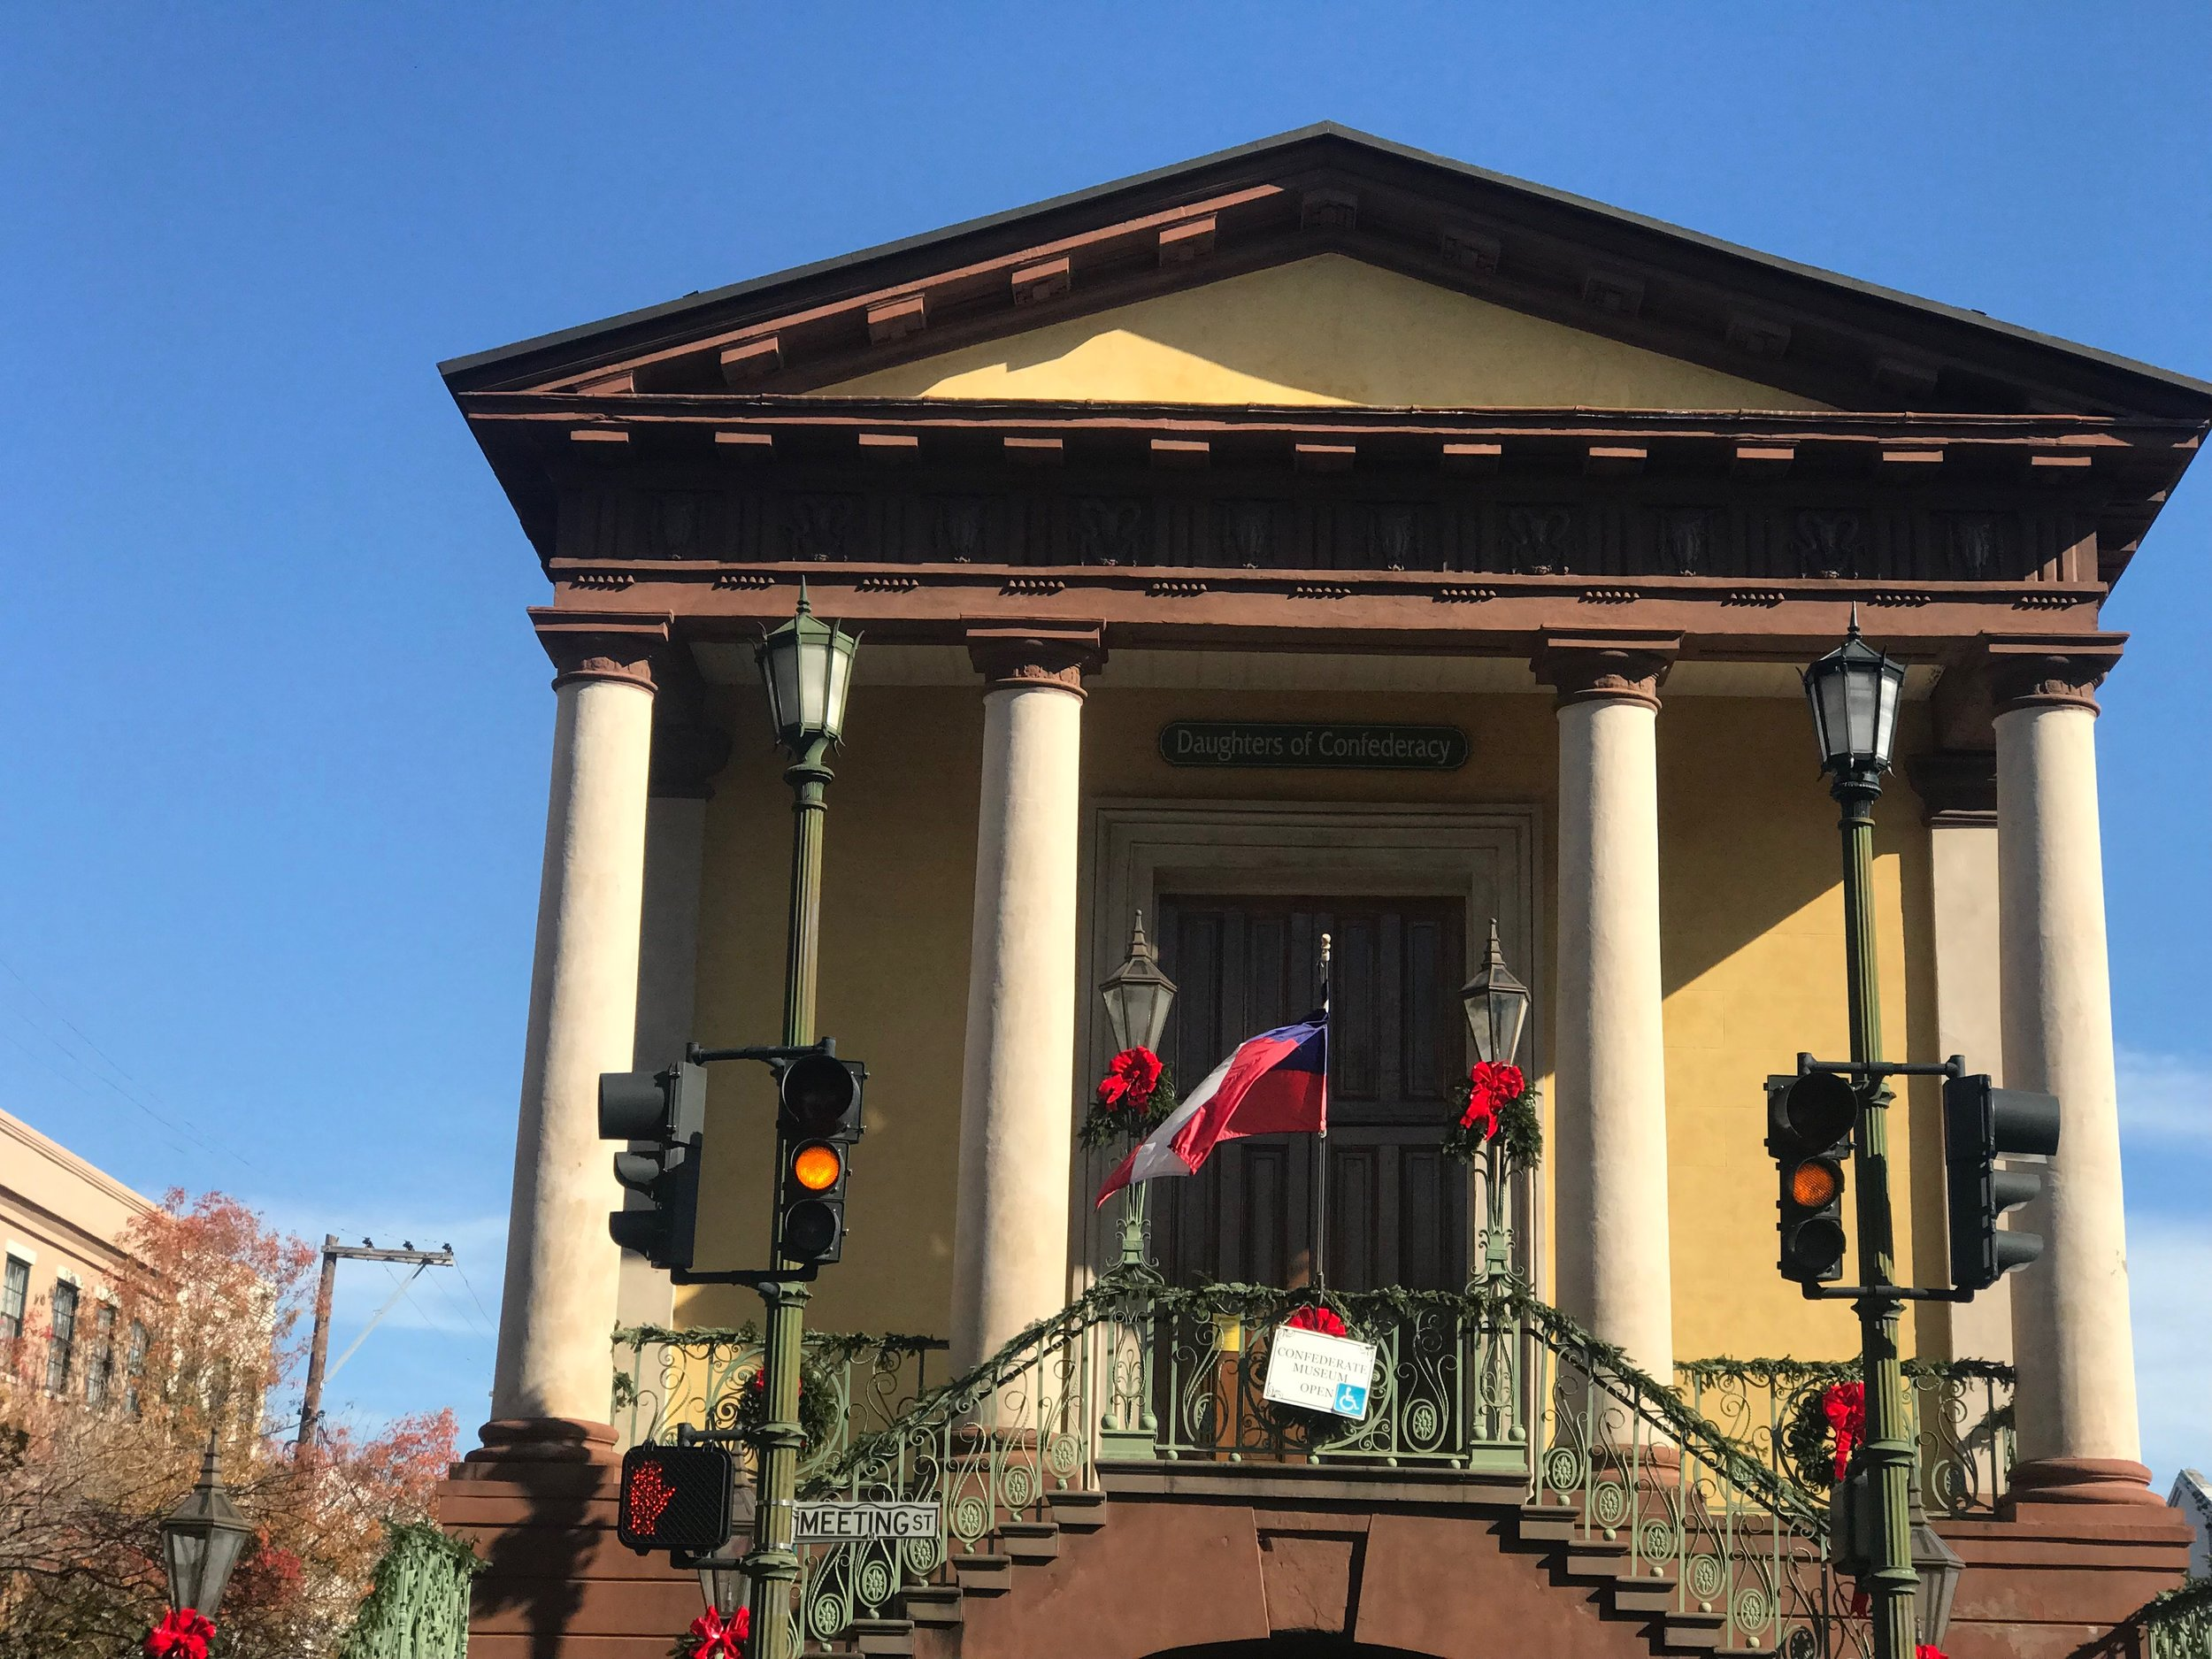 The Museum of the Confederacy, run by the Daughters of the Confederacy, sits upstairs in the historic Charleston Market building, built in 1841.